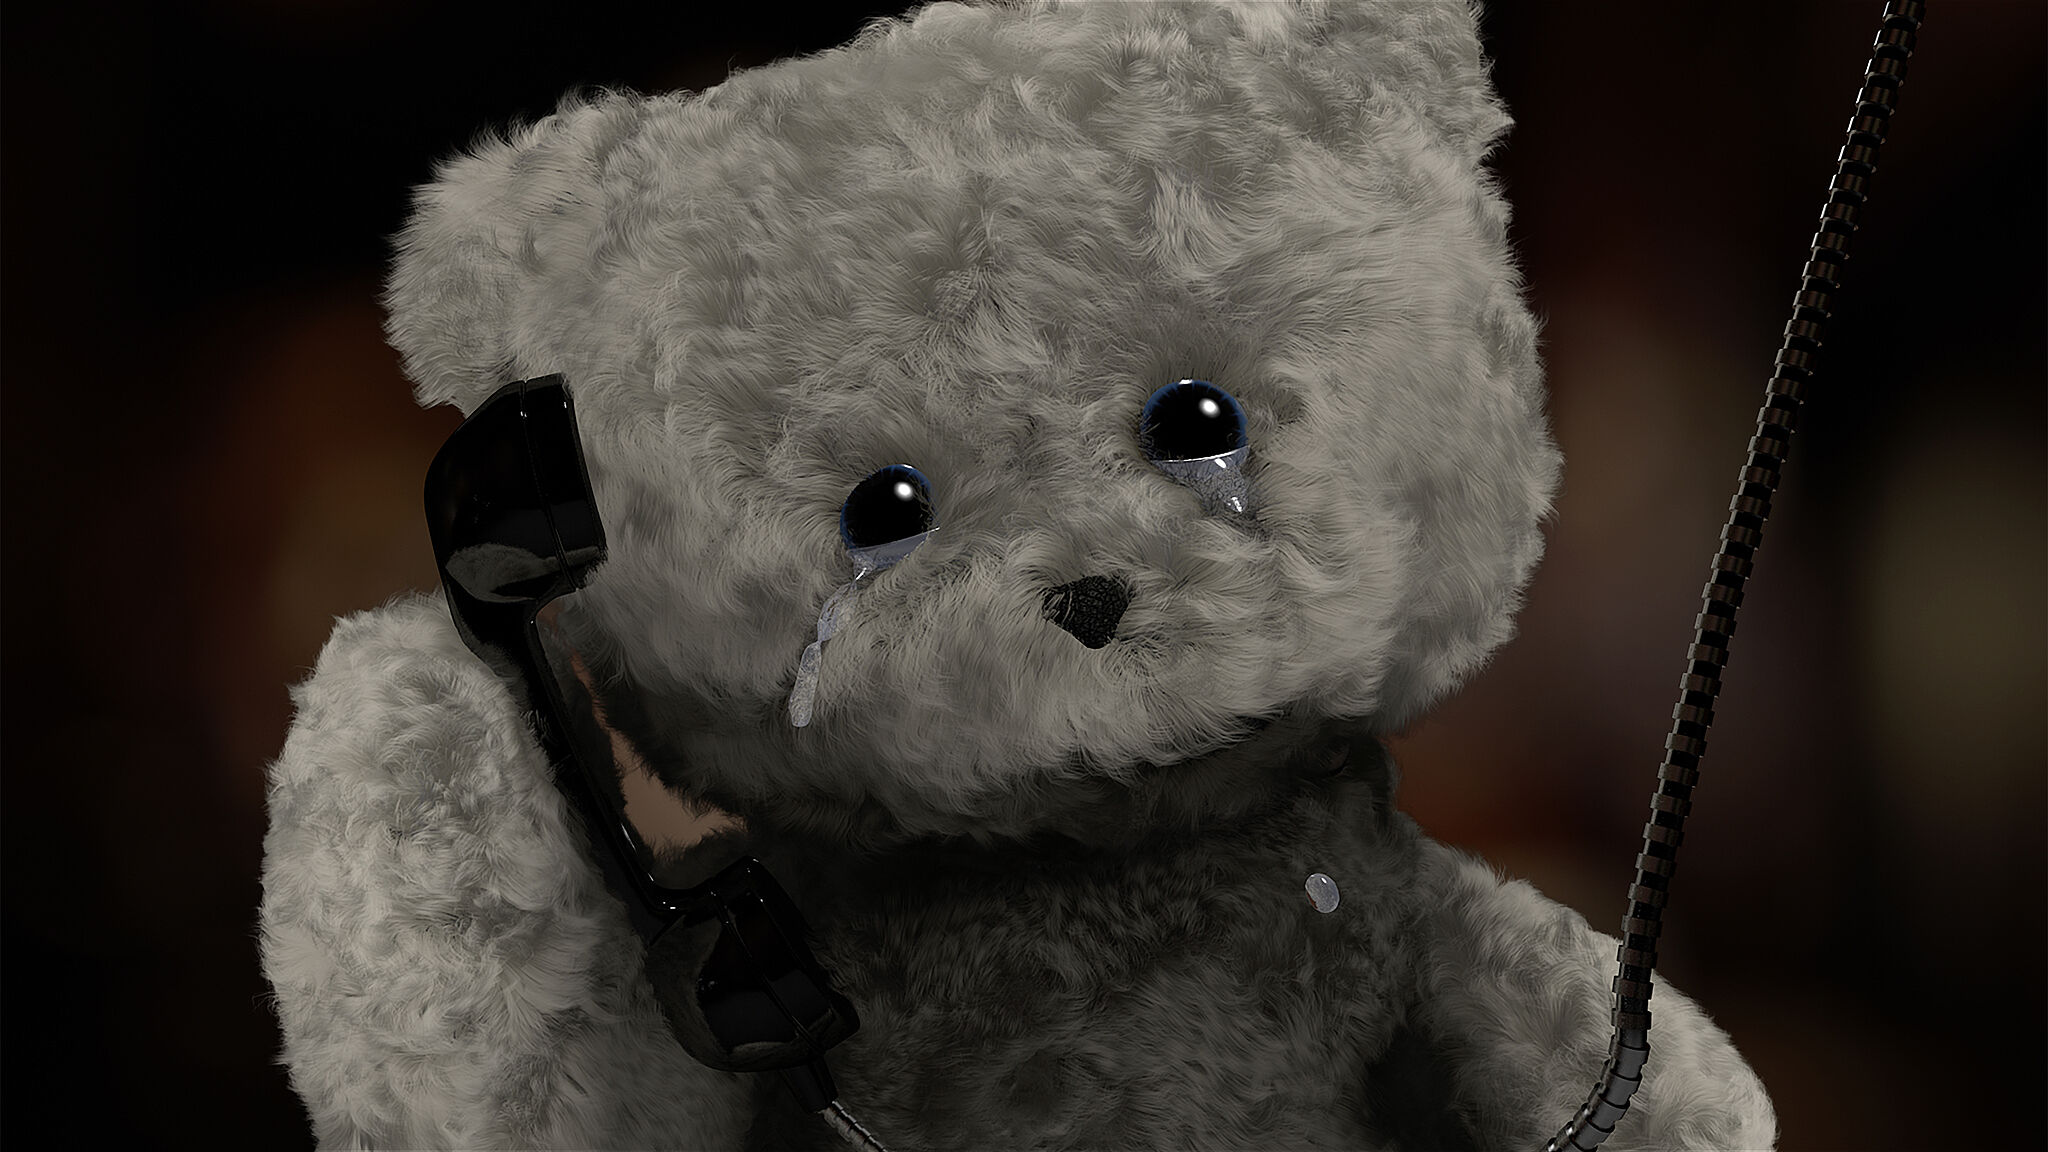 Film still of a bear crying.